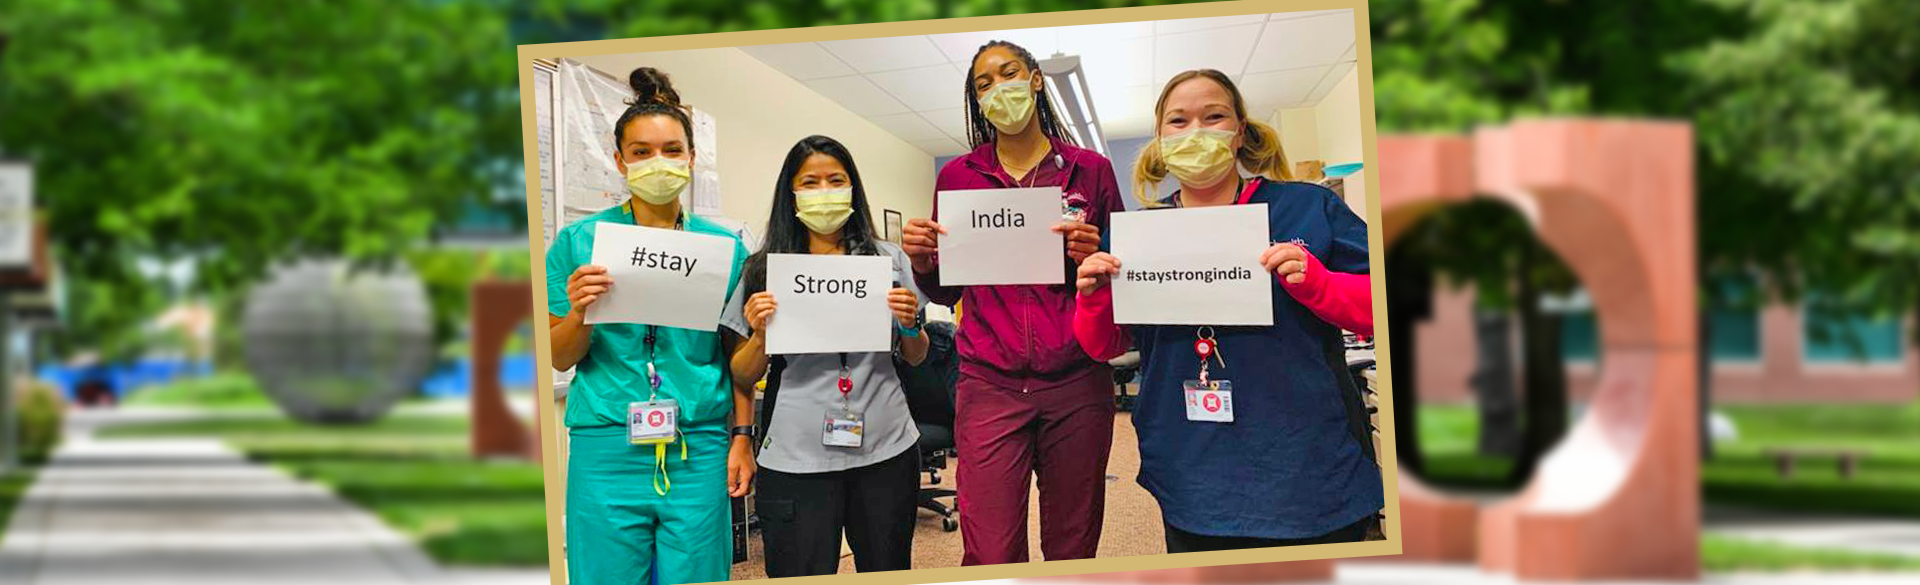 CU School of Medicine Doctor Working to Get COVID-19 Supplies to India